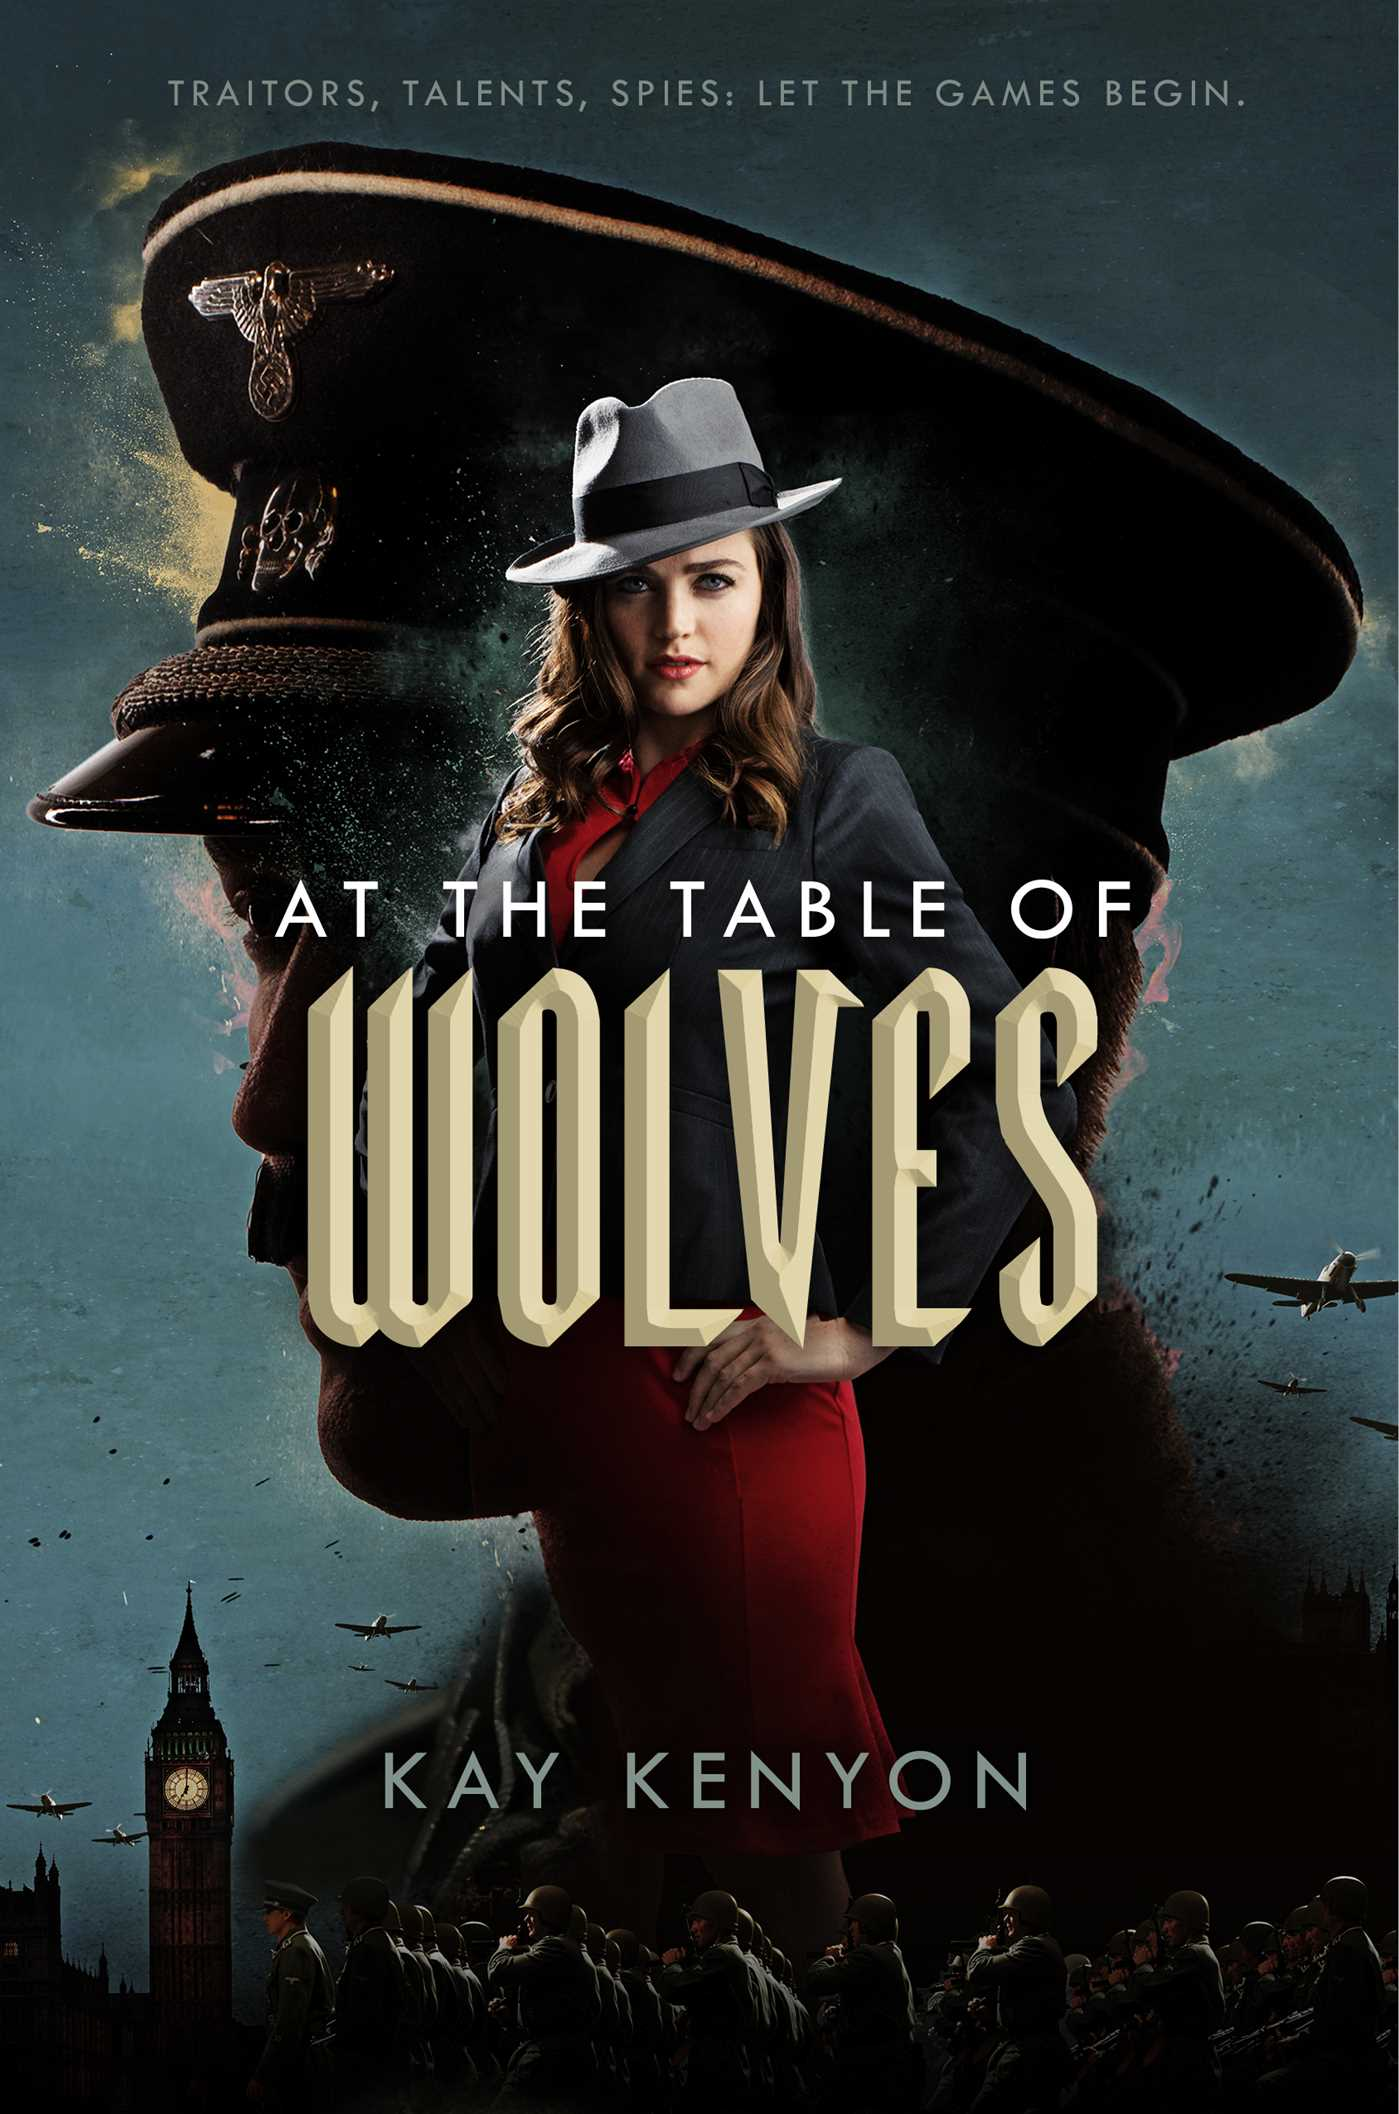 At the table of wolves 9781481487795 hr